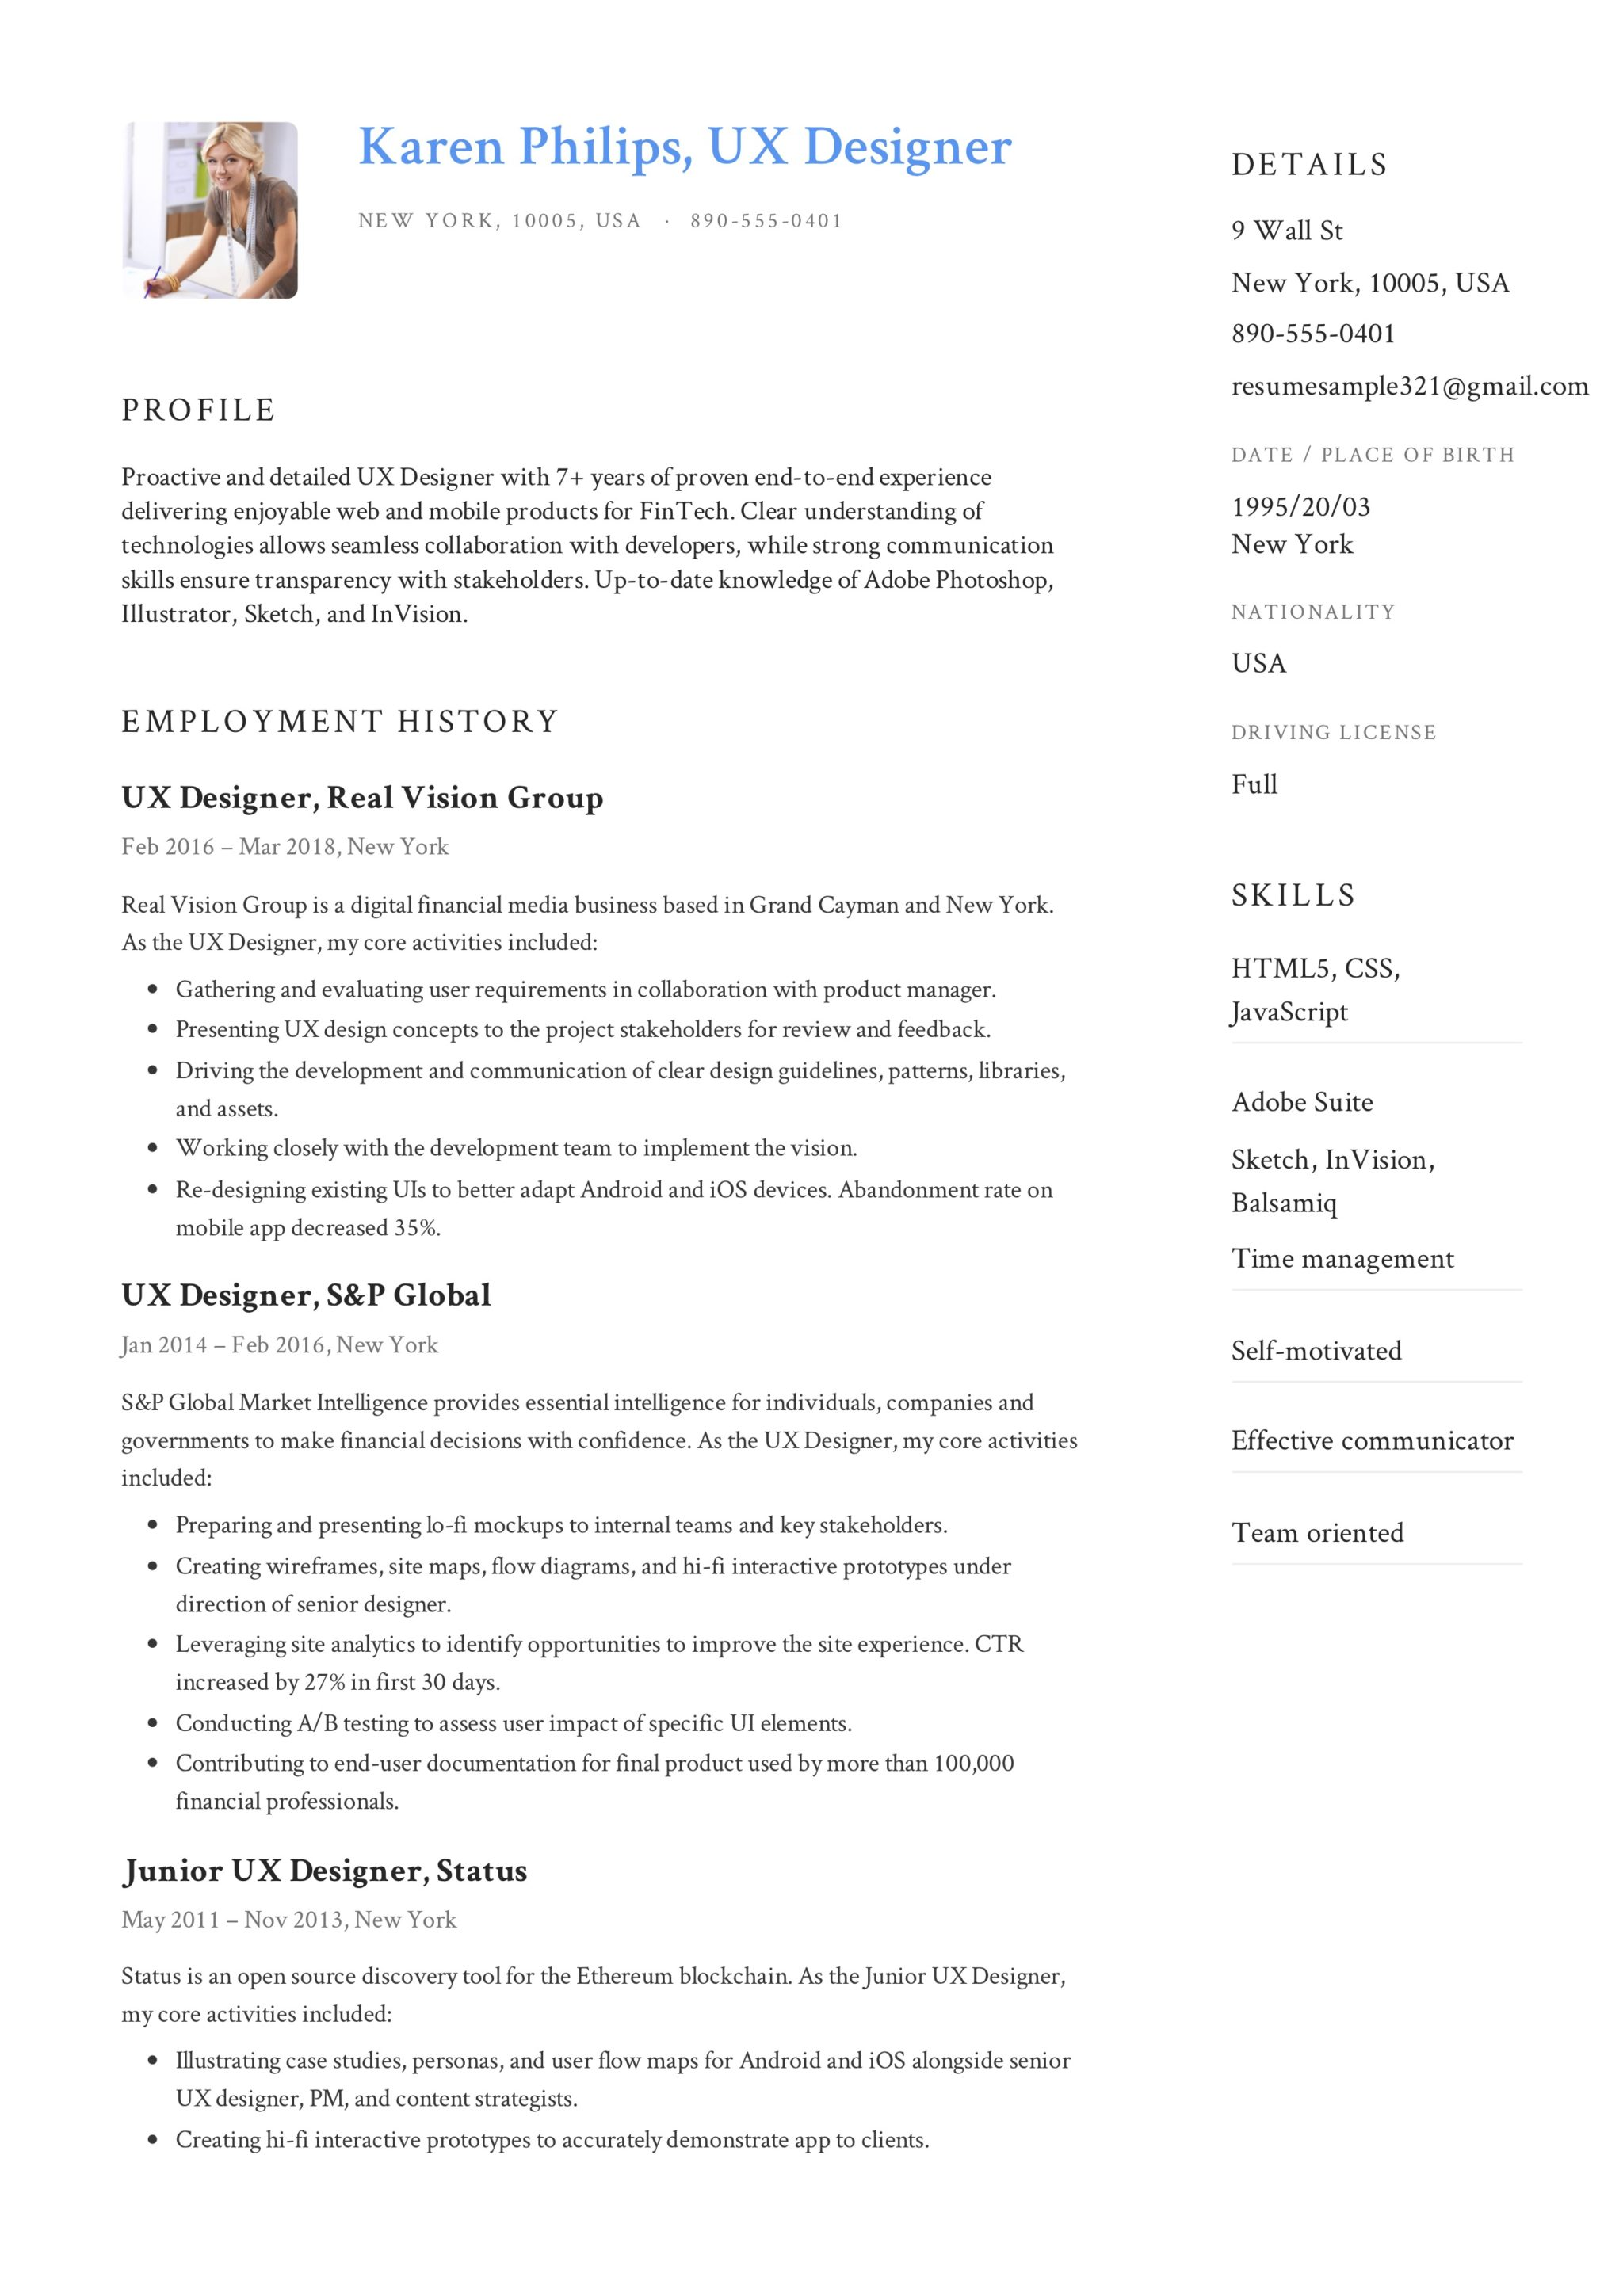 UX Designer Resume Sample - Karen Philips (5)